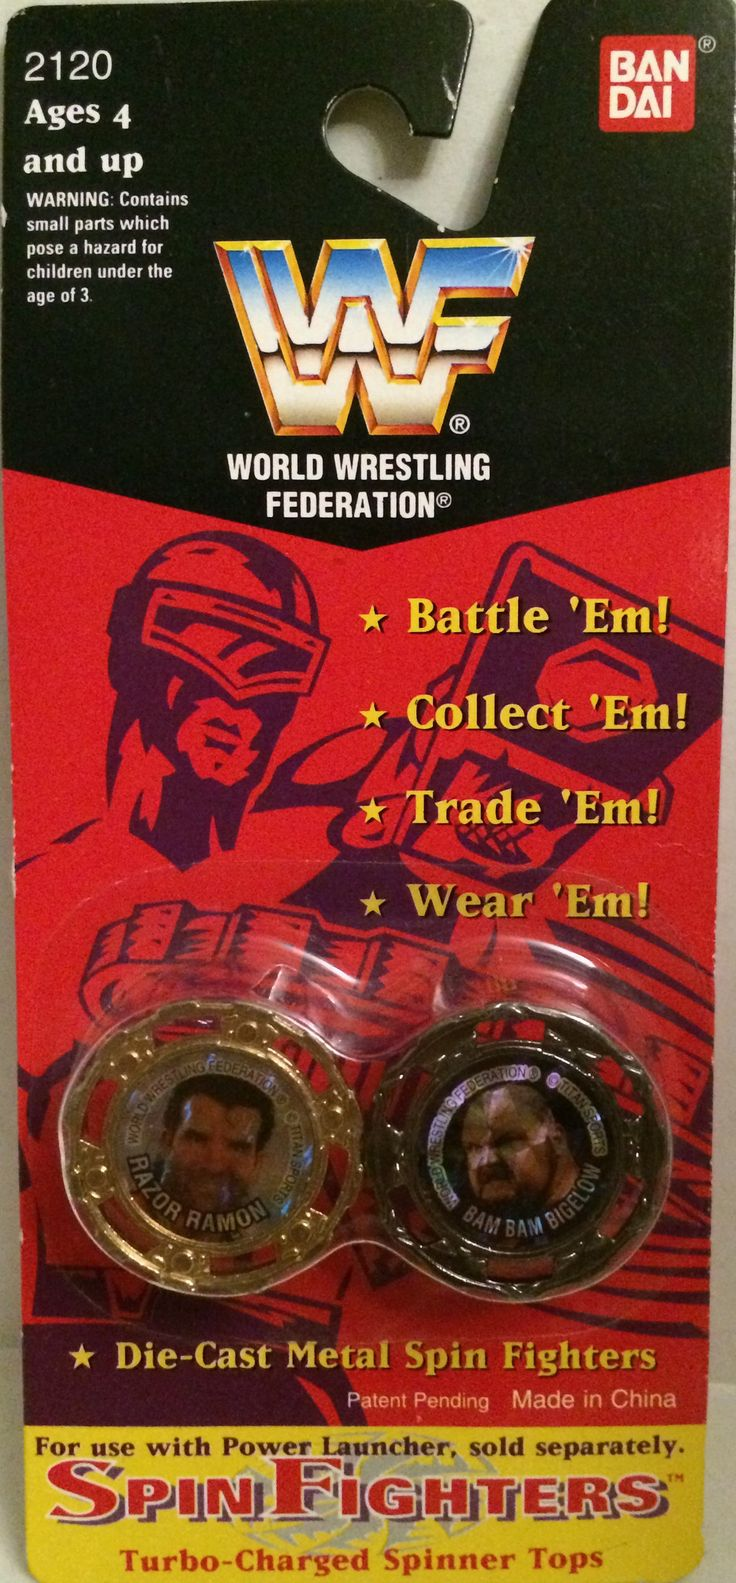 (TAS031978) - Bandai WWE Wrestling Spin Fighters - Razor Ramon & Bam Bam Bigelow